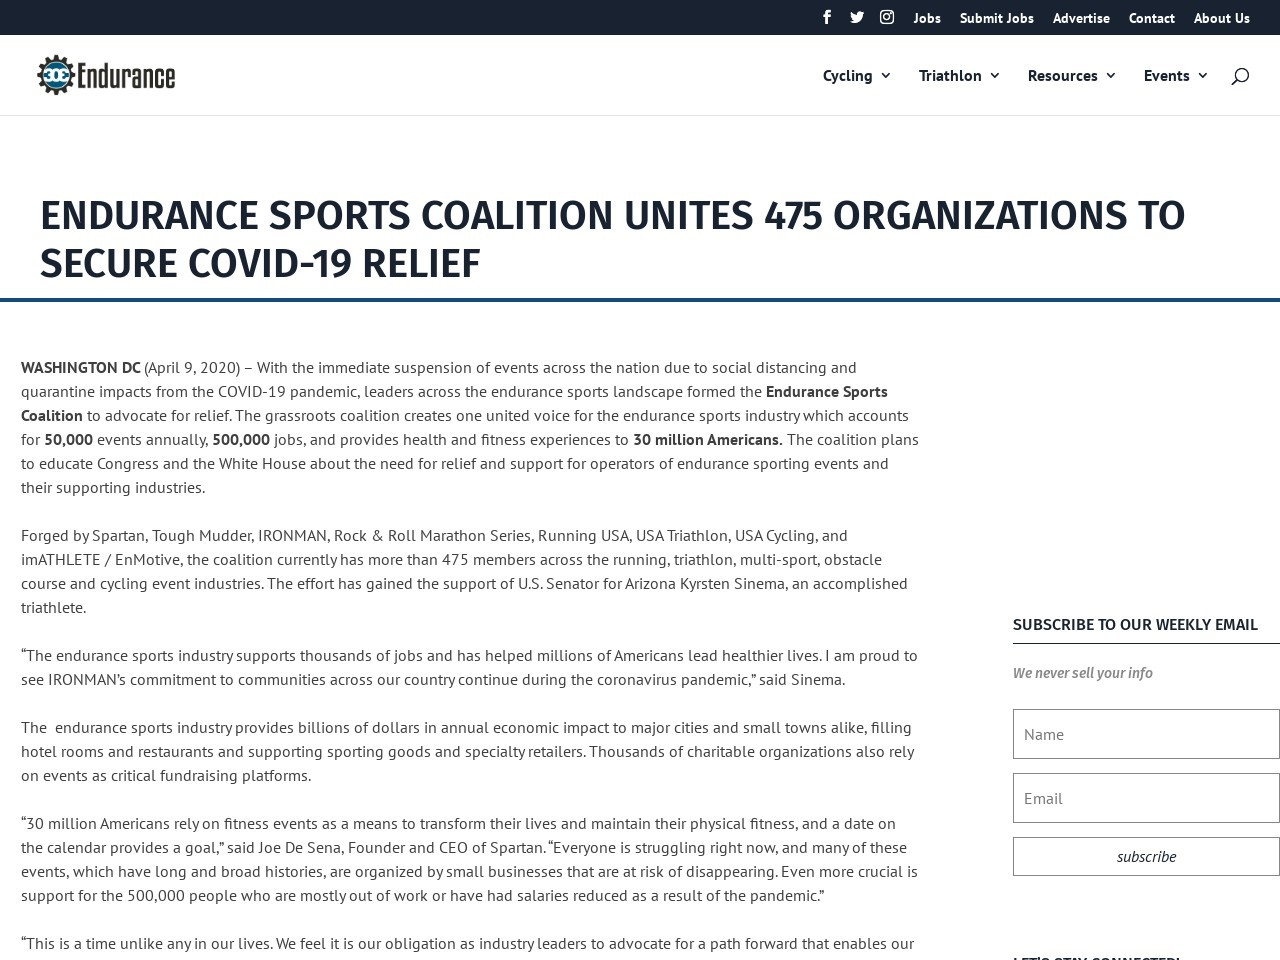 ENDURANCE SPORTS COALITION UNITES 475 ORGANIZATIONS TO SECURE COVID-19 RELIEF